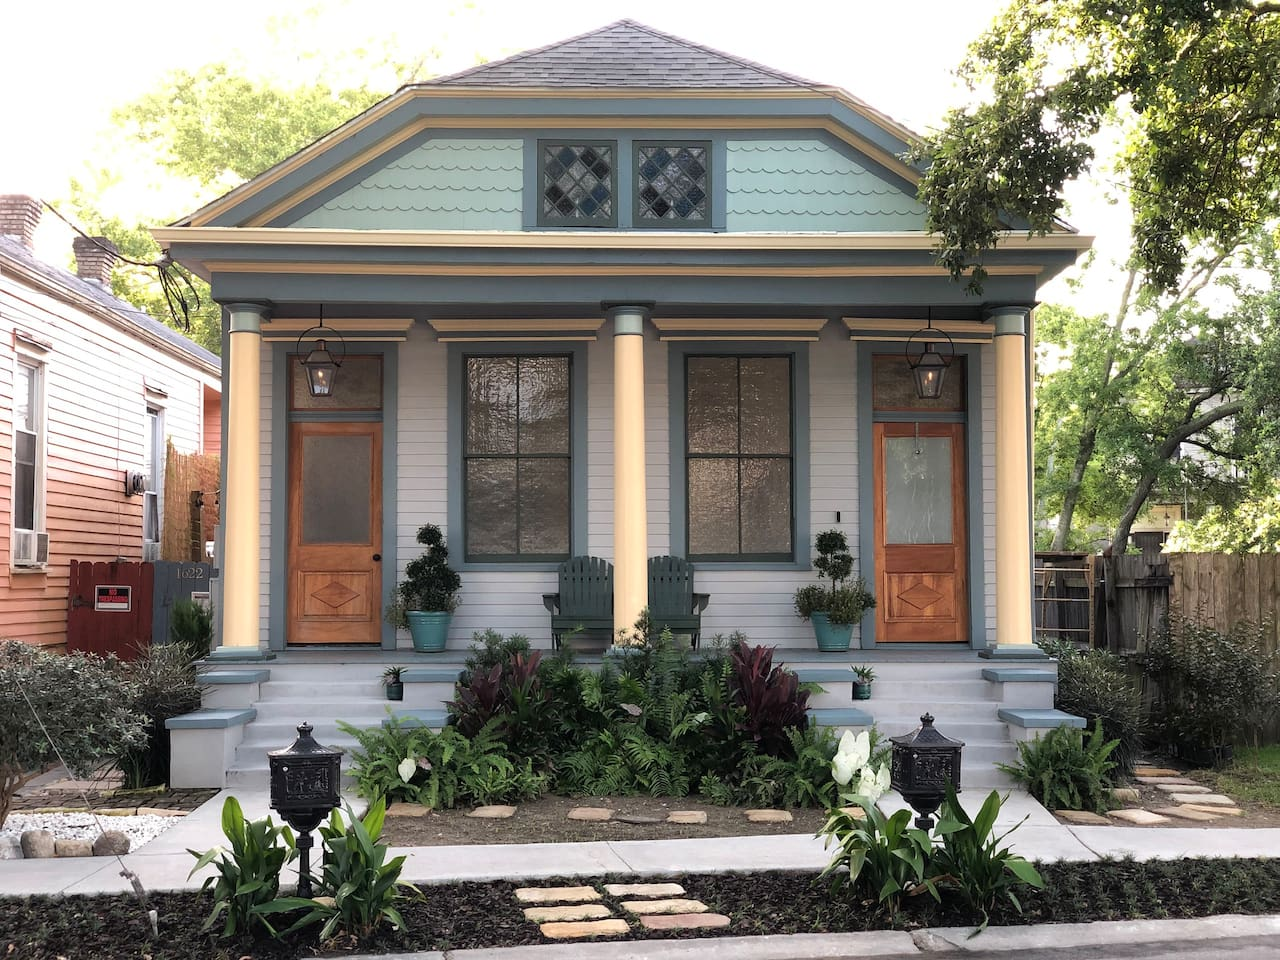 Our home is just across the street from the Fair Grounds and Race Course in the Esplanade Ridge Historic District and the Fairgrounds Triangle neighborhood.